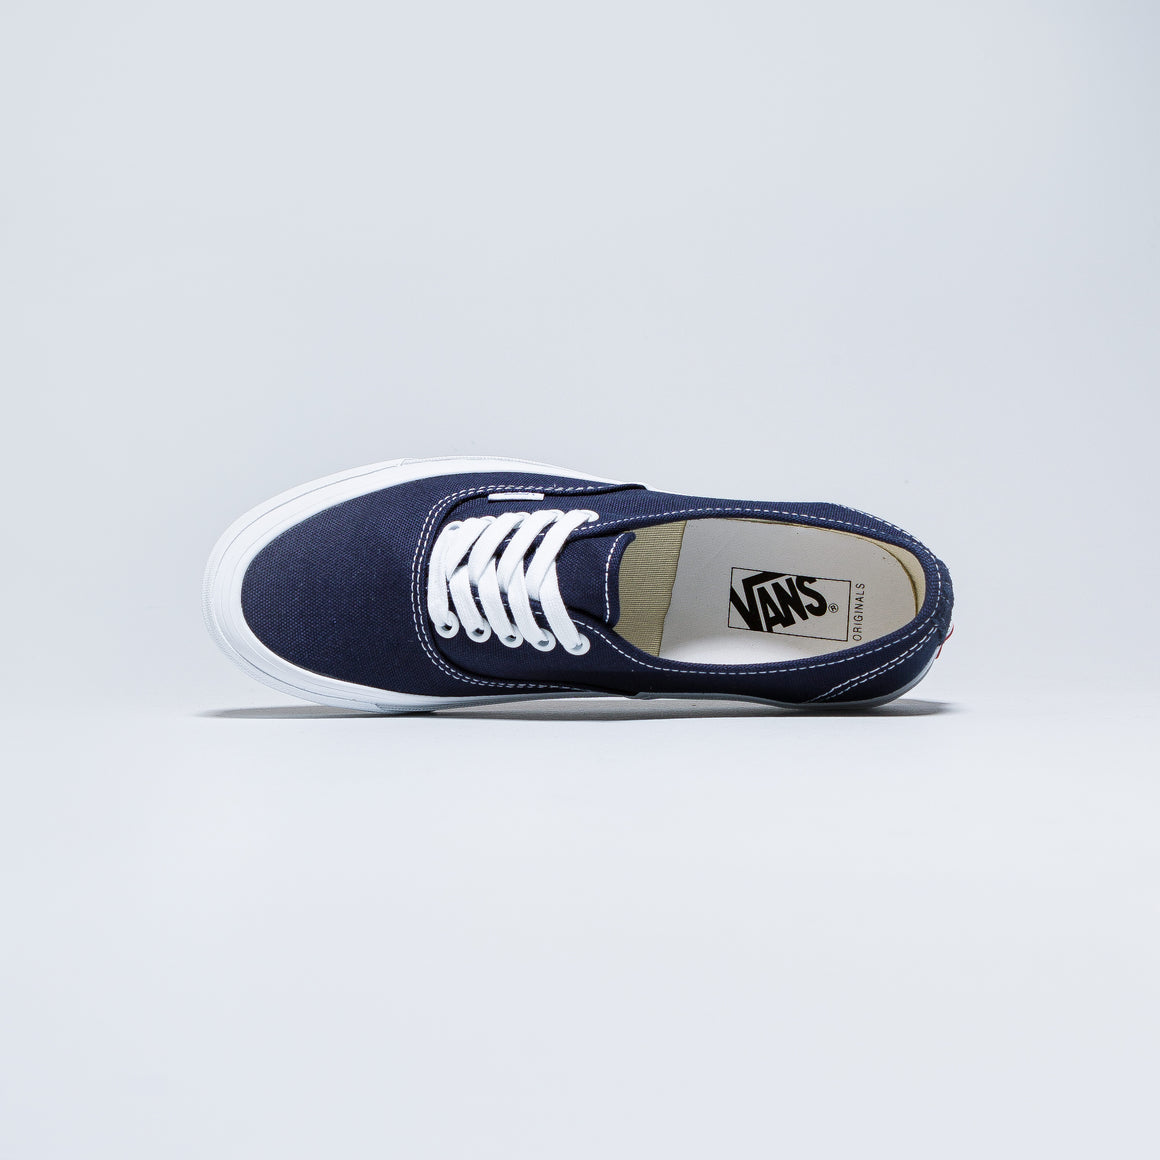 Vans - OG Authentic LX -Navy - Up There